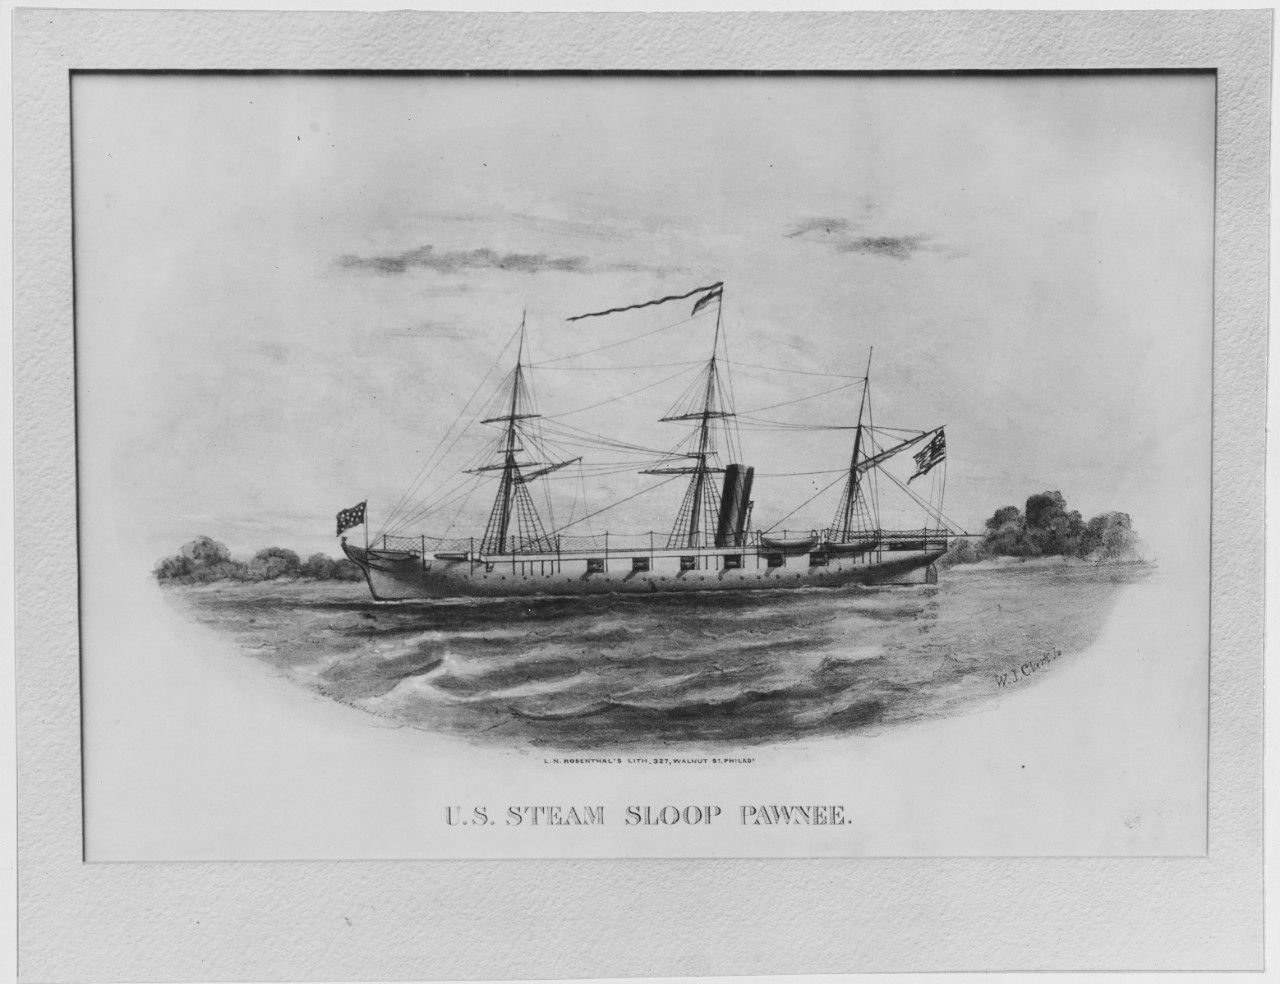 U.S. Steam Sloop PAWNEE